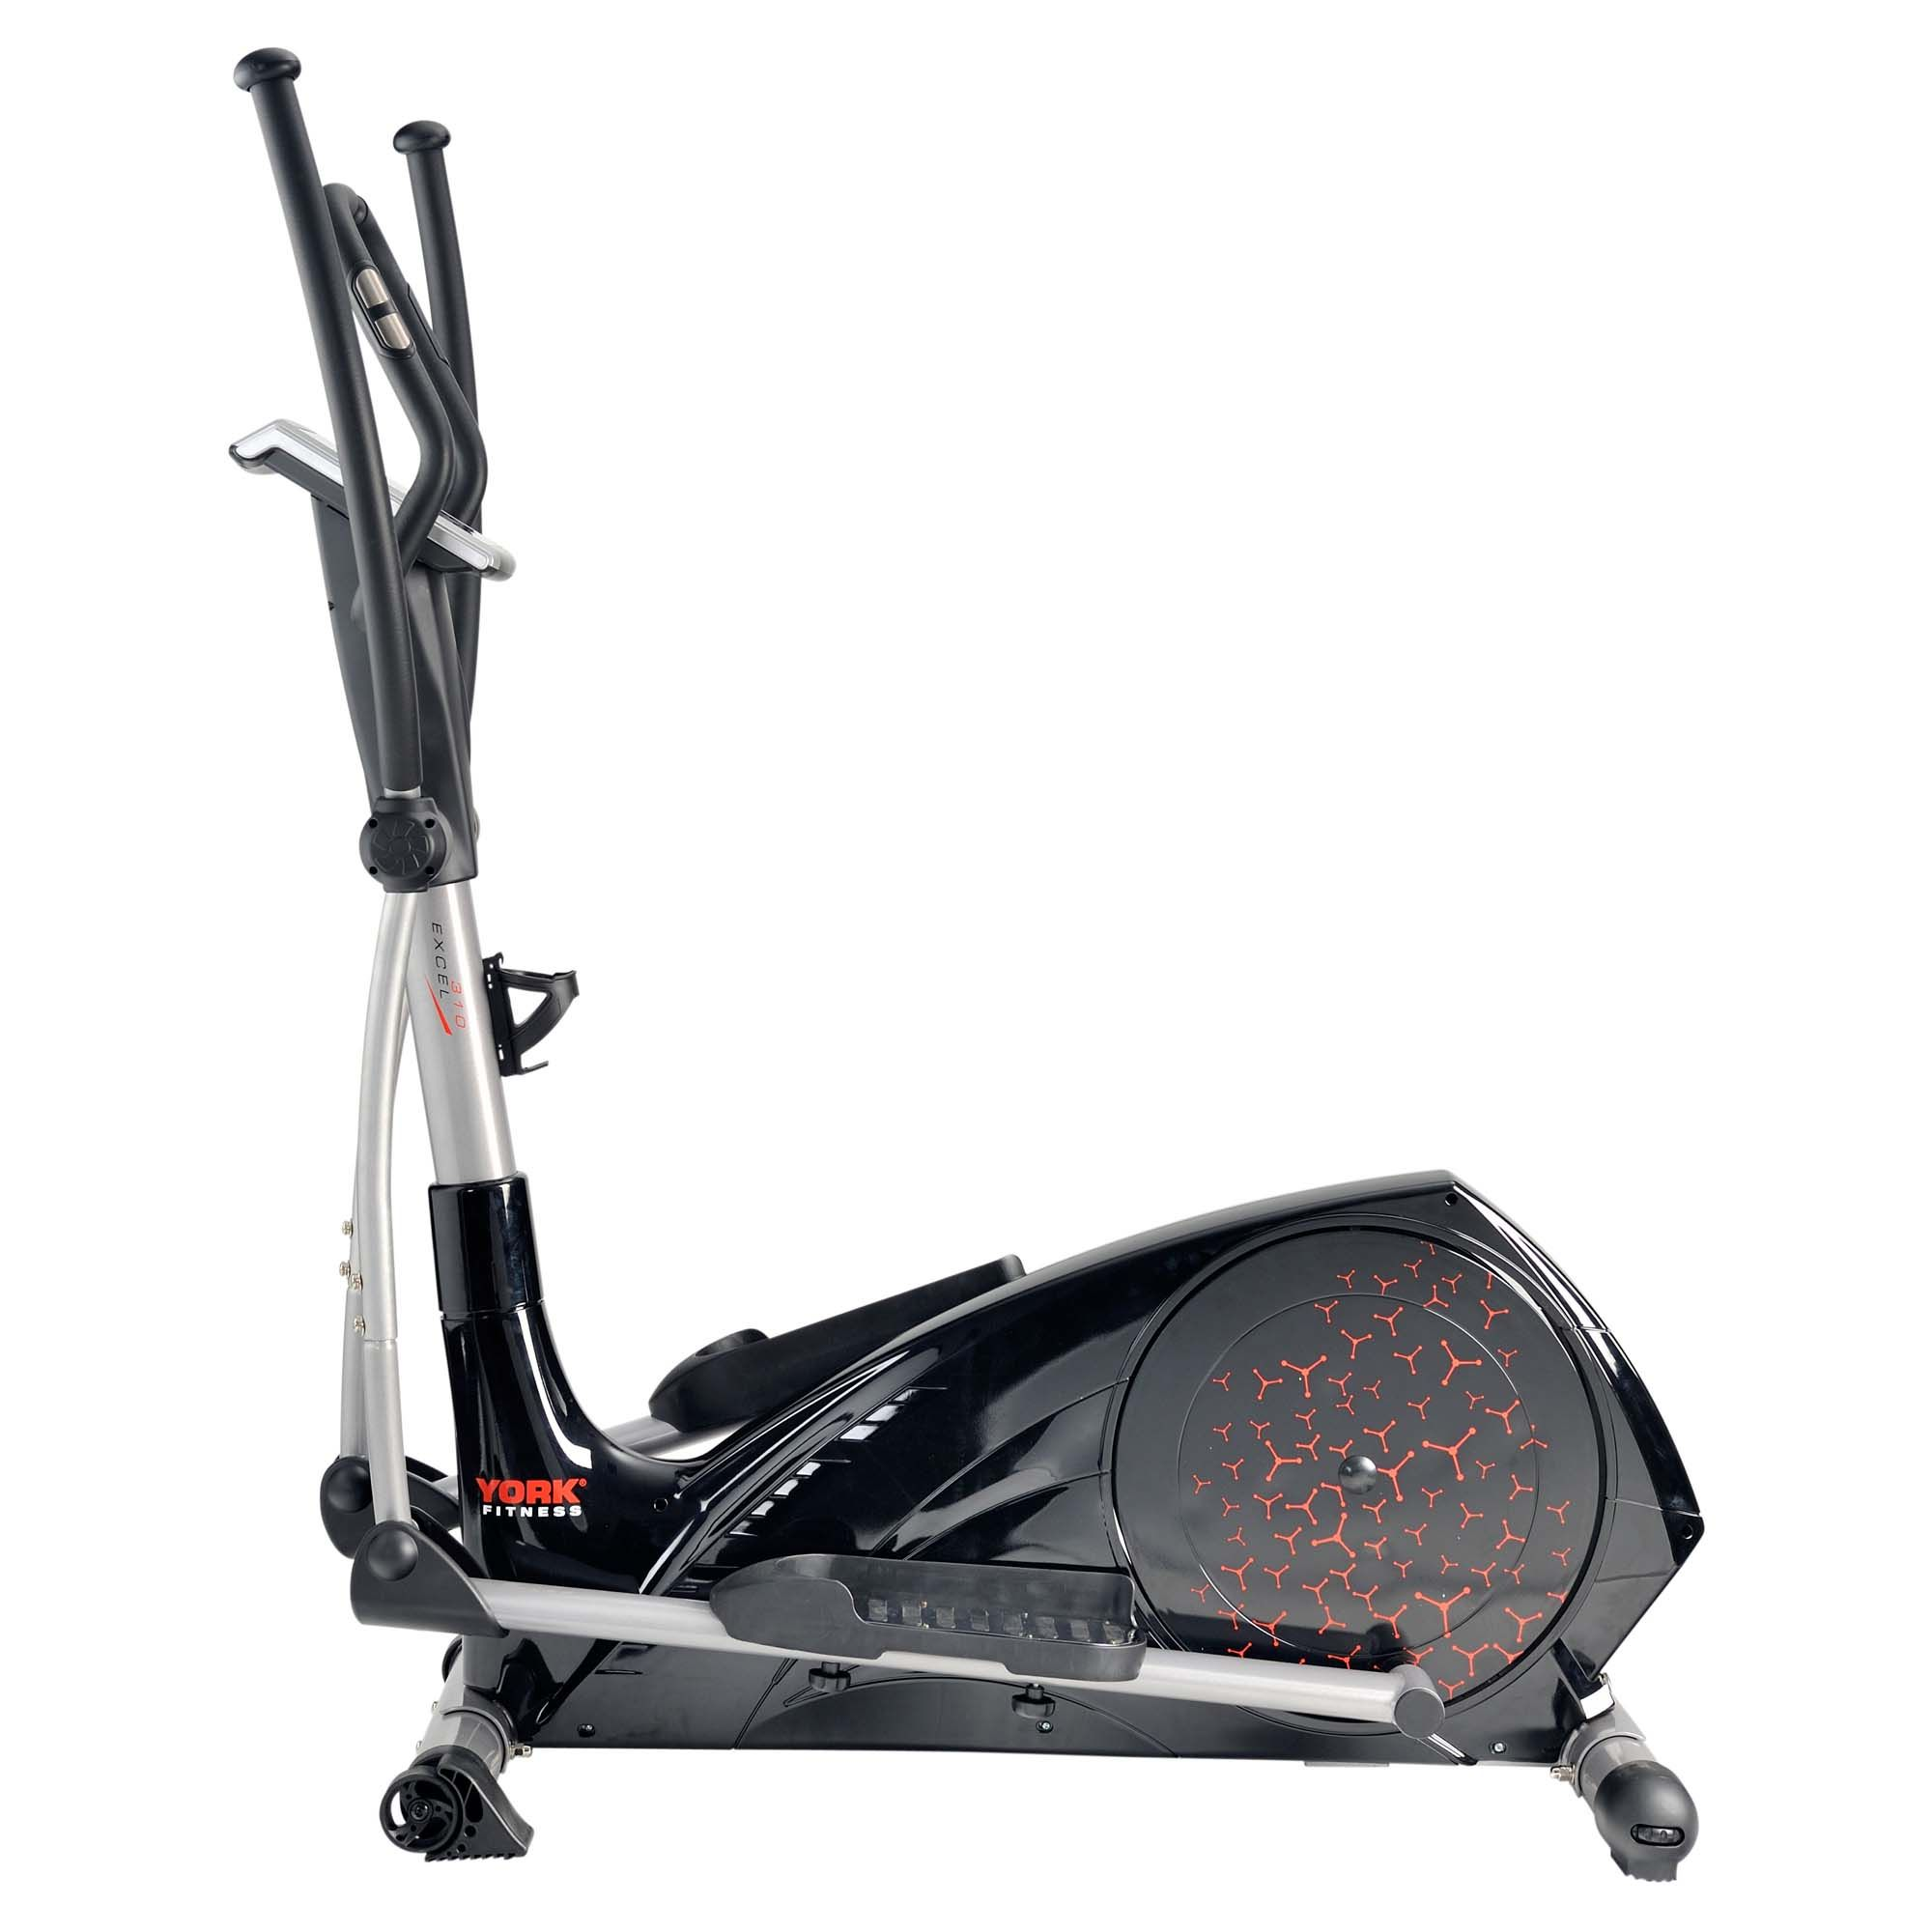 North York Personal Trainer For In Home: York Fitness Excel 310 Cross Trainer Reviews- About York